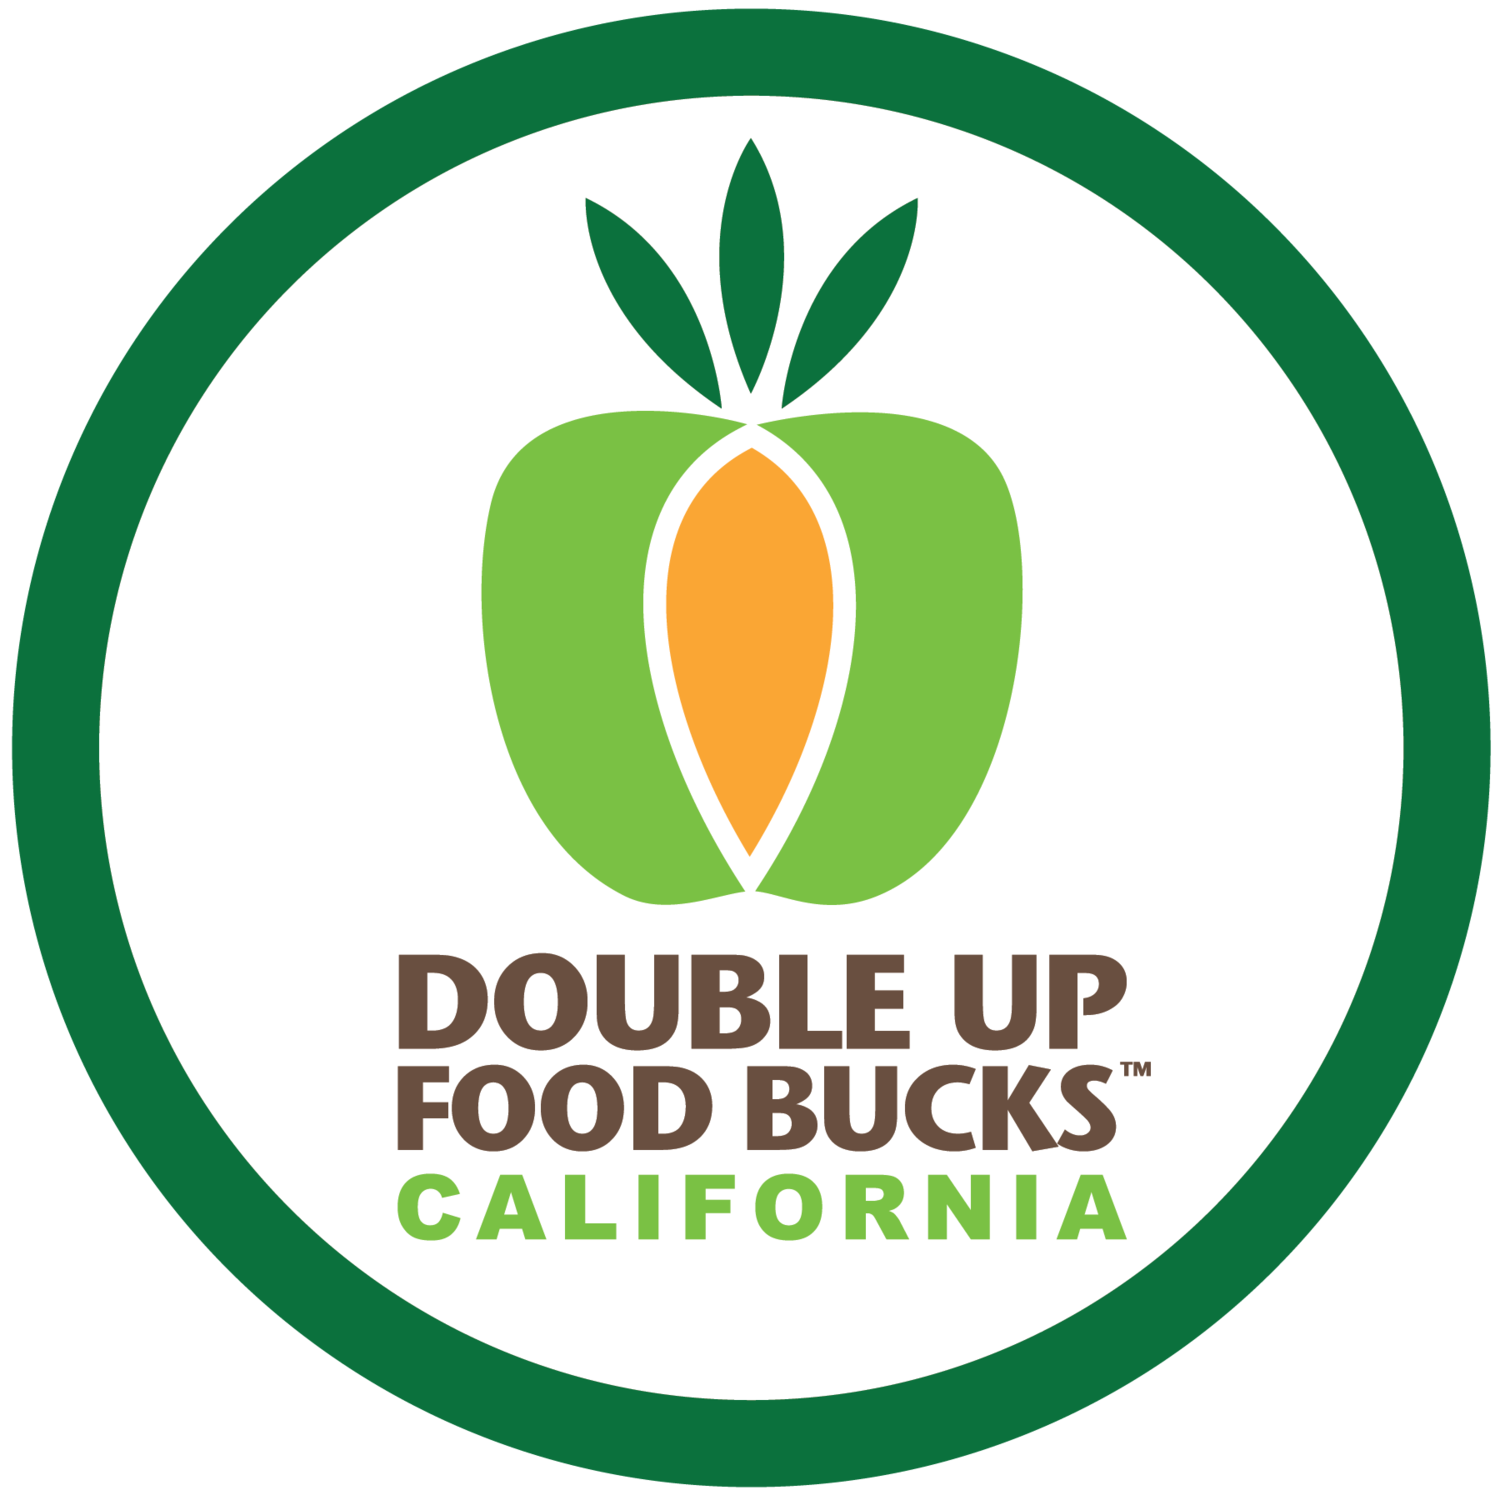 Double Up Food Bucks California